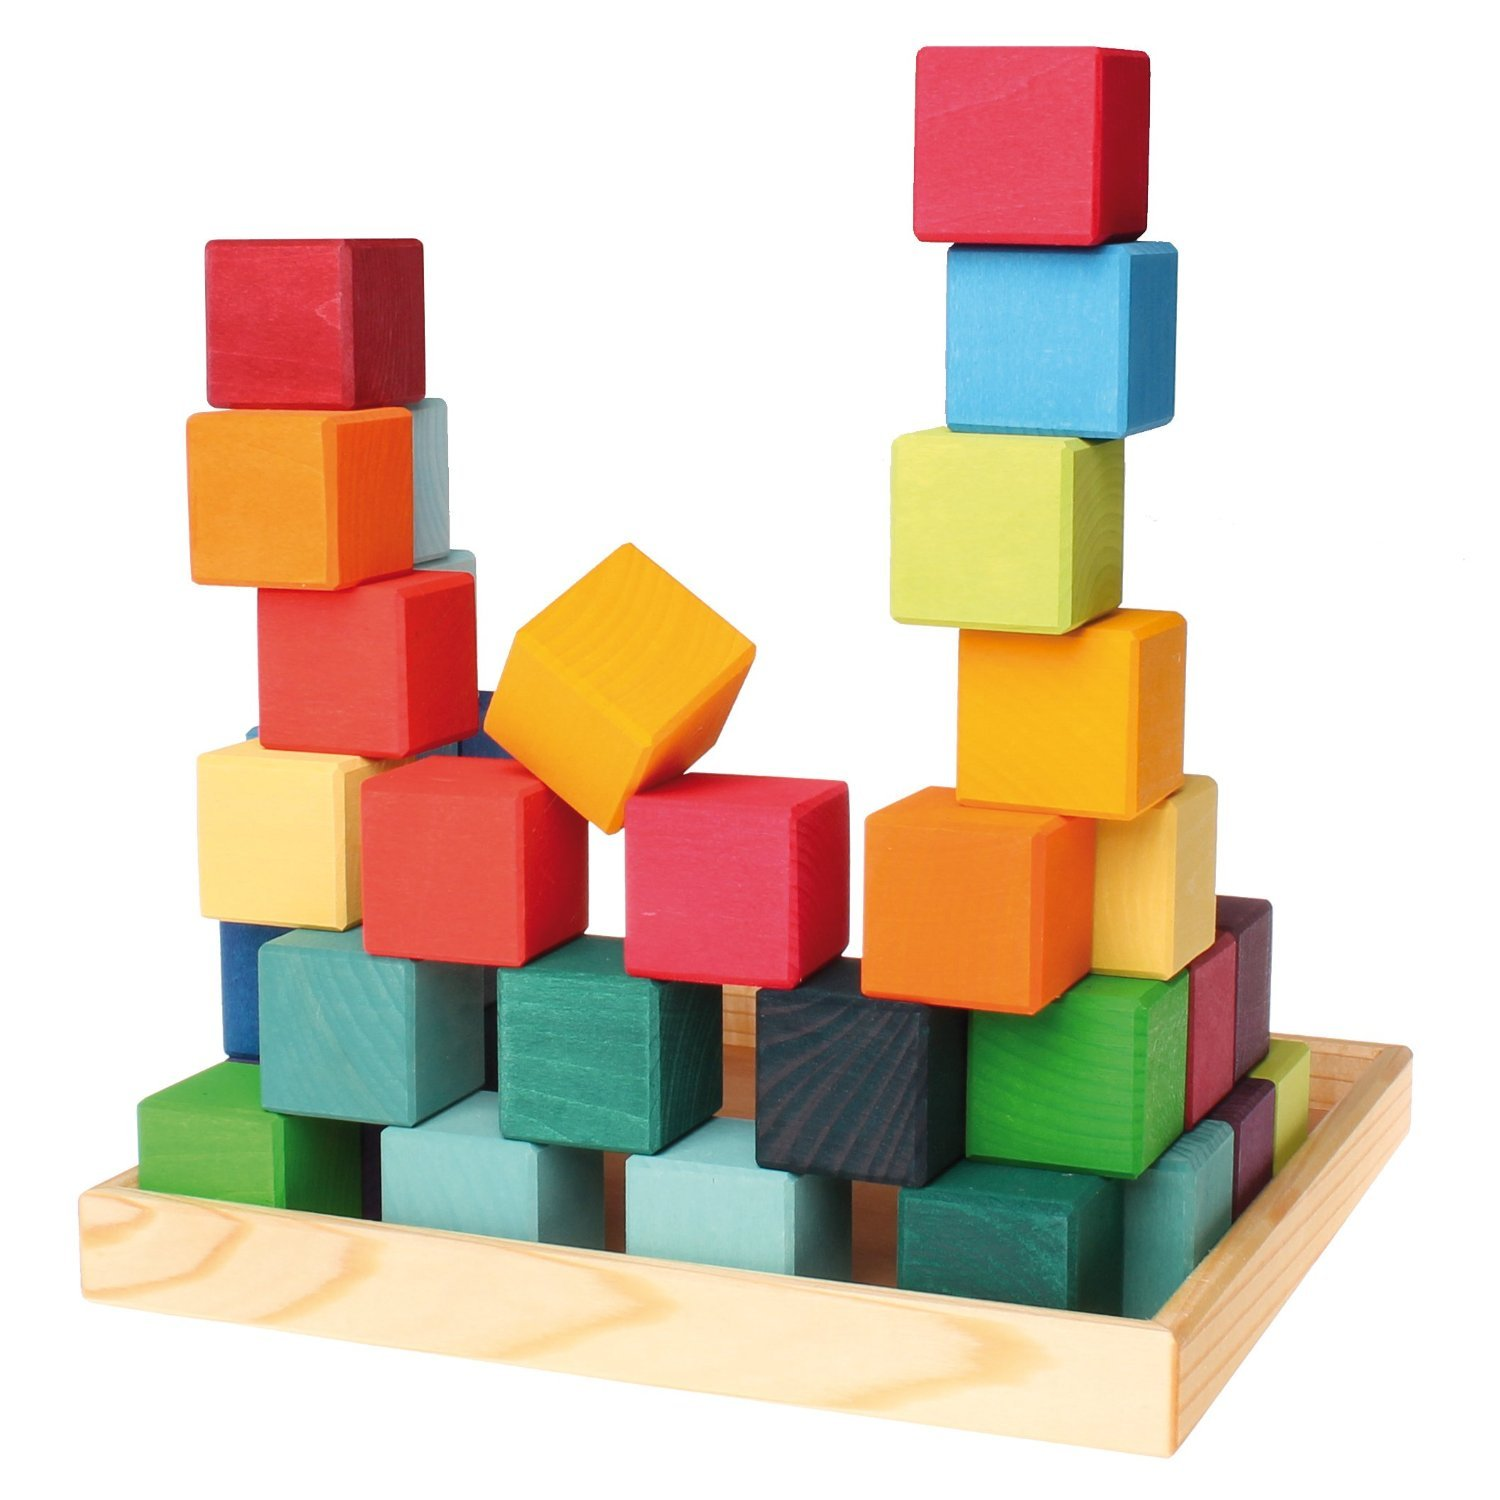 Grimm's Mosaic Square of 36 Wooden Cube Blocks with Storage Tray, 4x4 Size by Grimm's Spiel and Holz Design